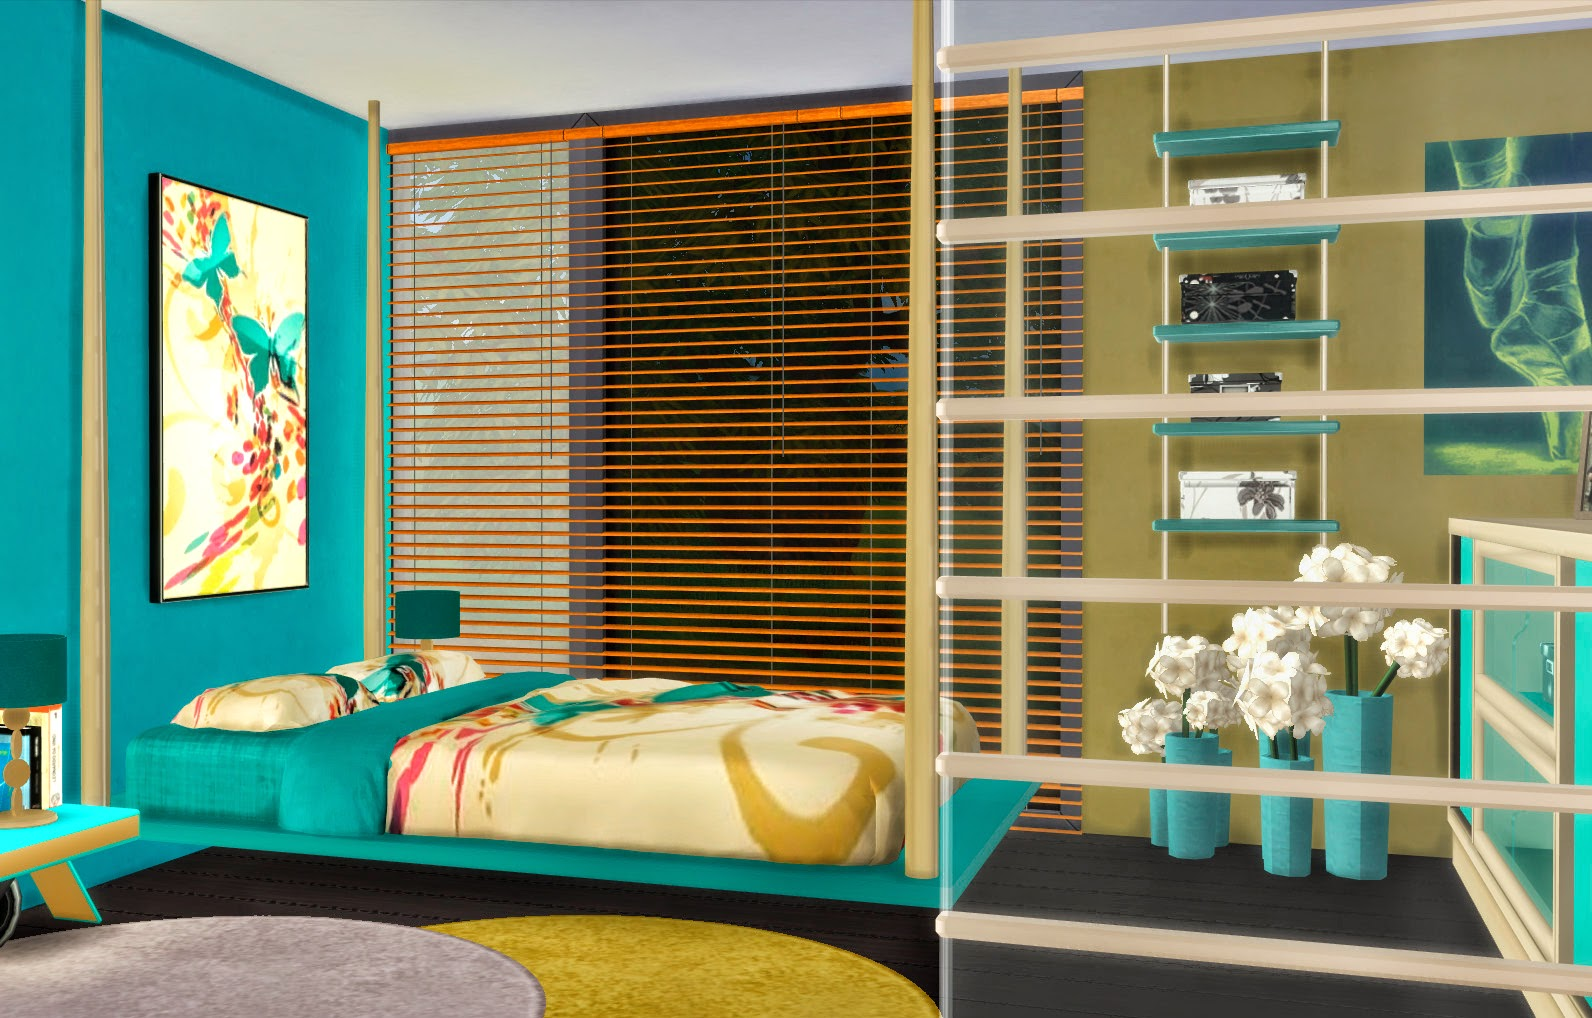 Esszimmer Sims 4 Dormitorio Maivan Sims 4 Custom Content Hd Wallpapers Entwurf